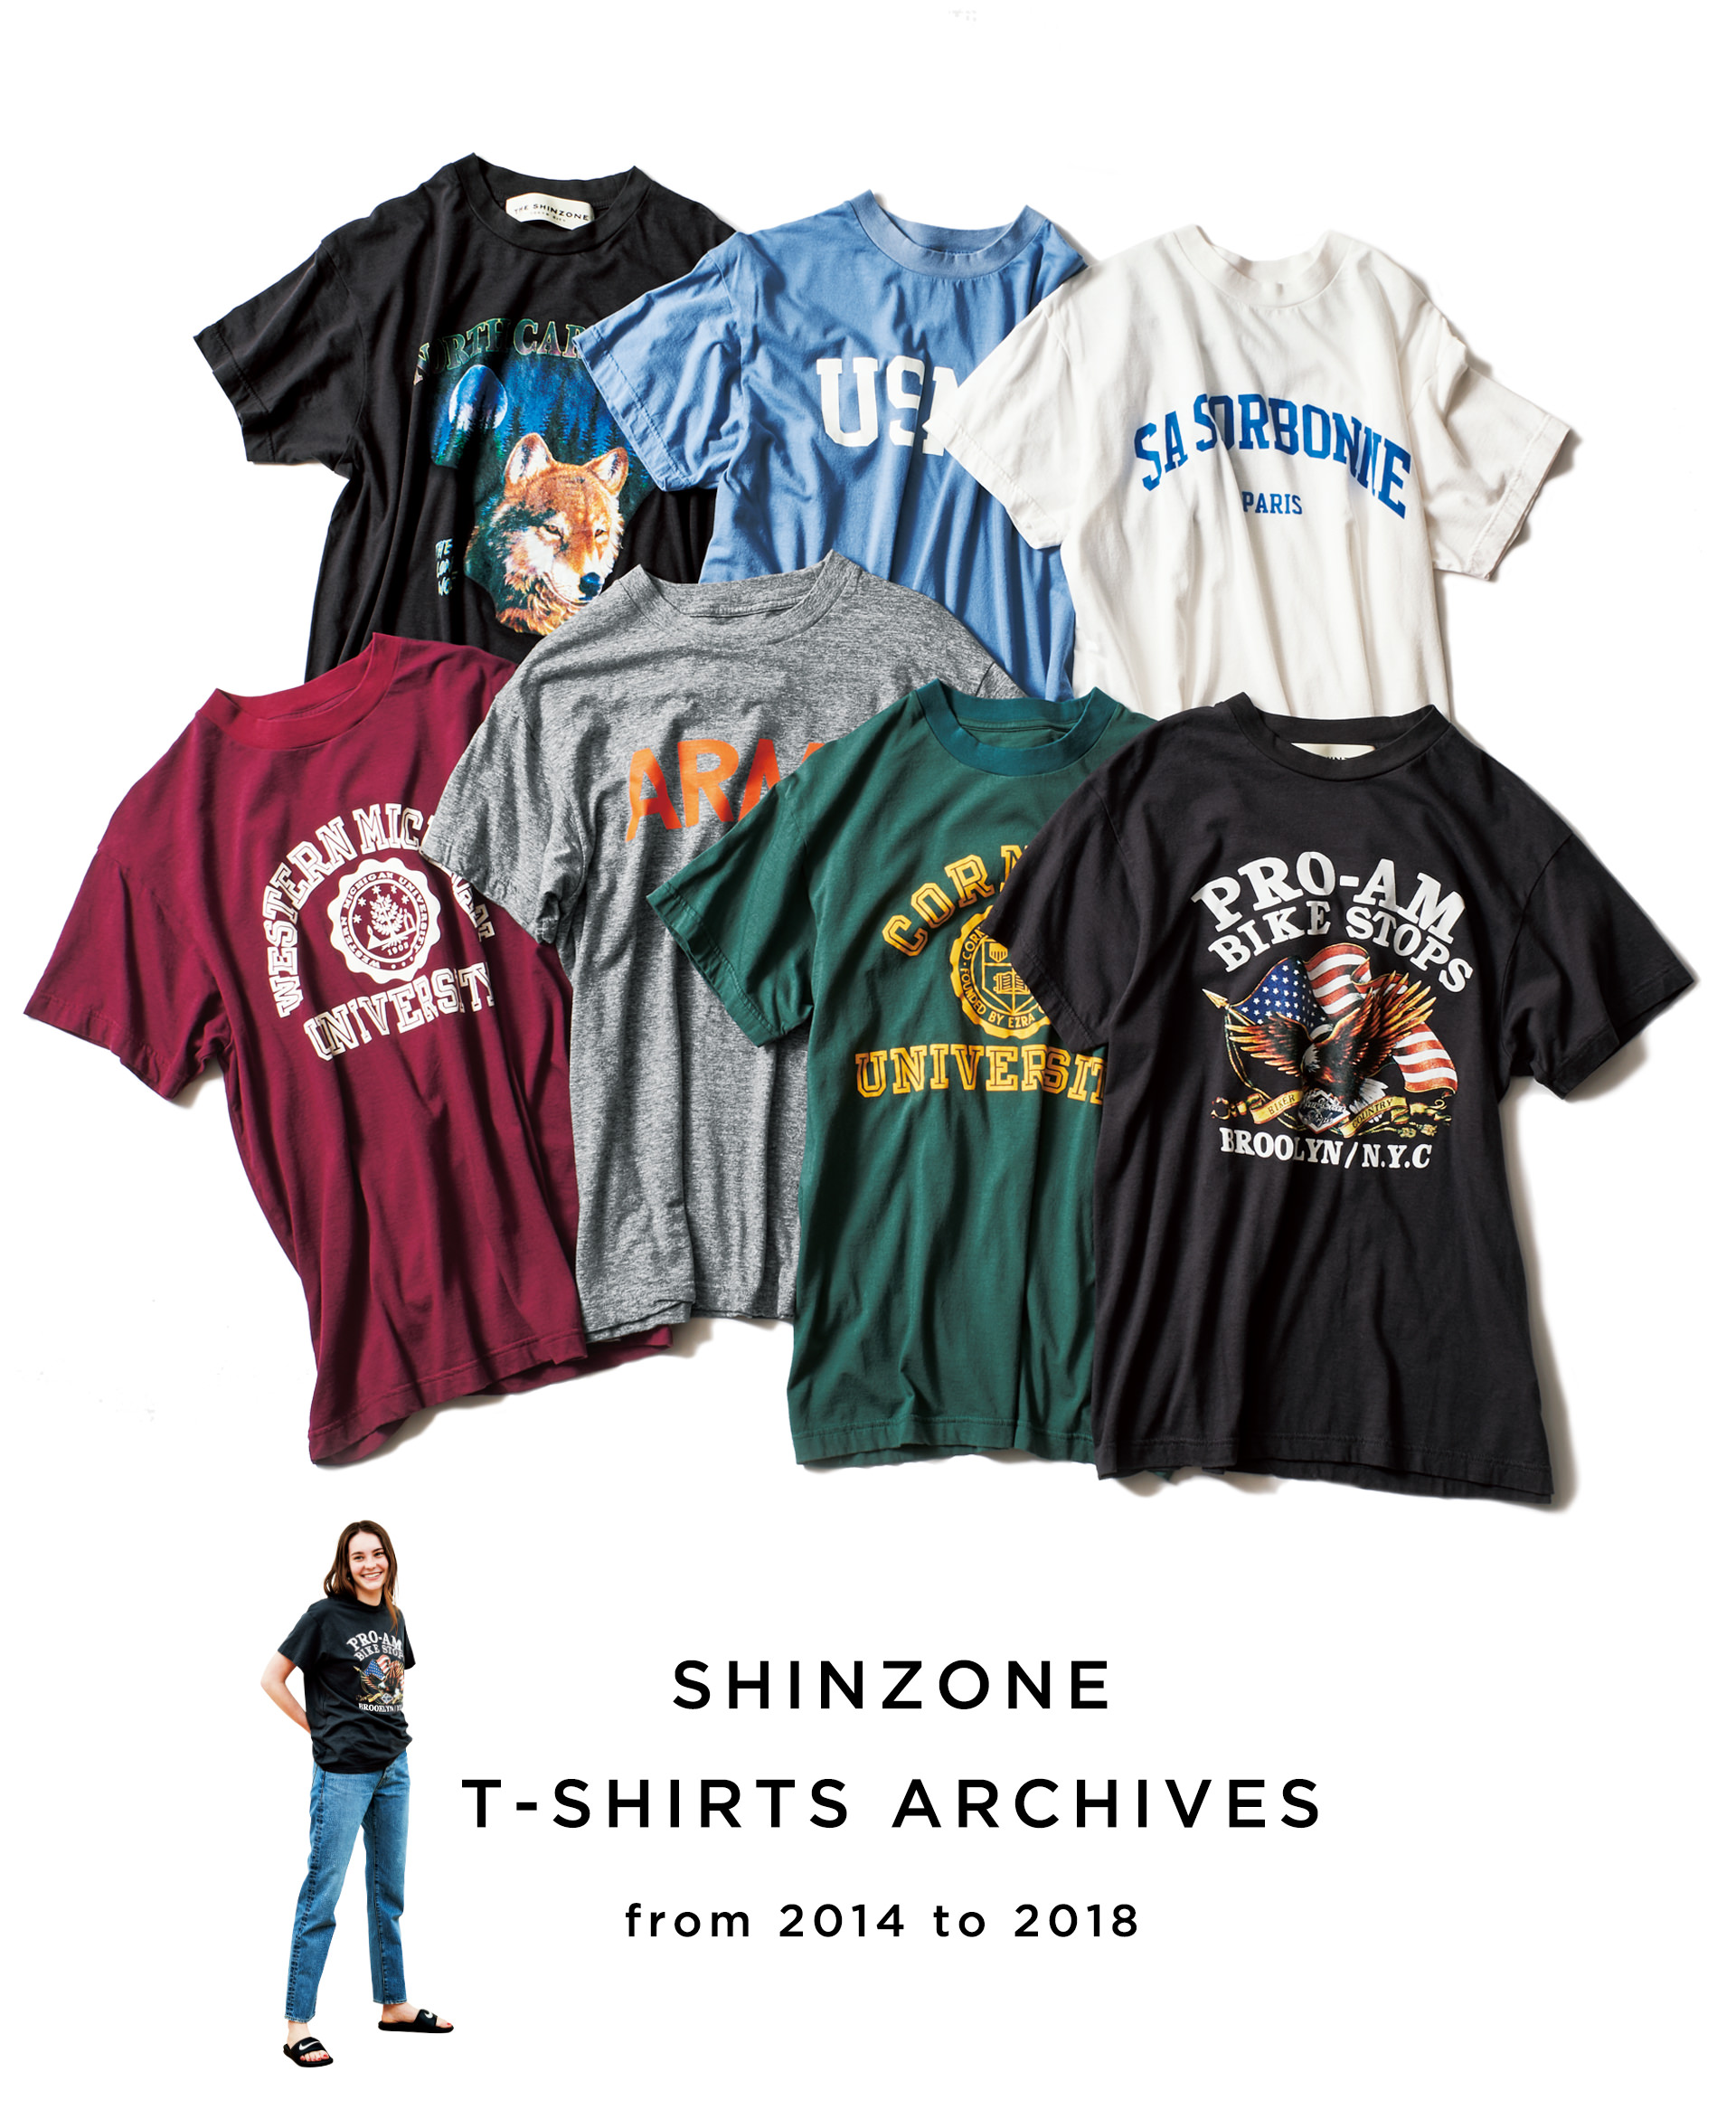 NEWS_T-SHIRTS-ARCHIVES